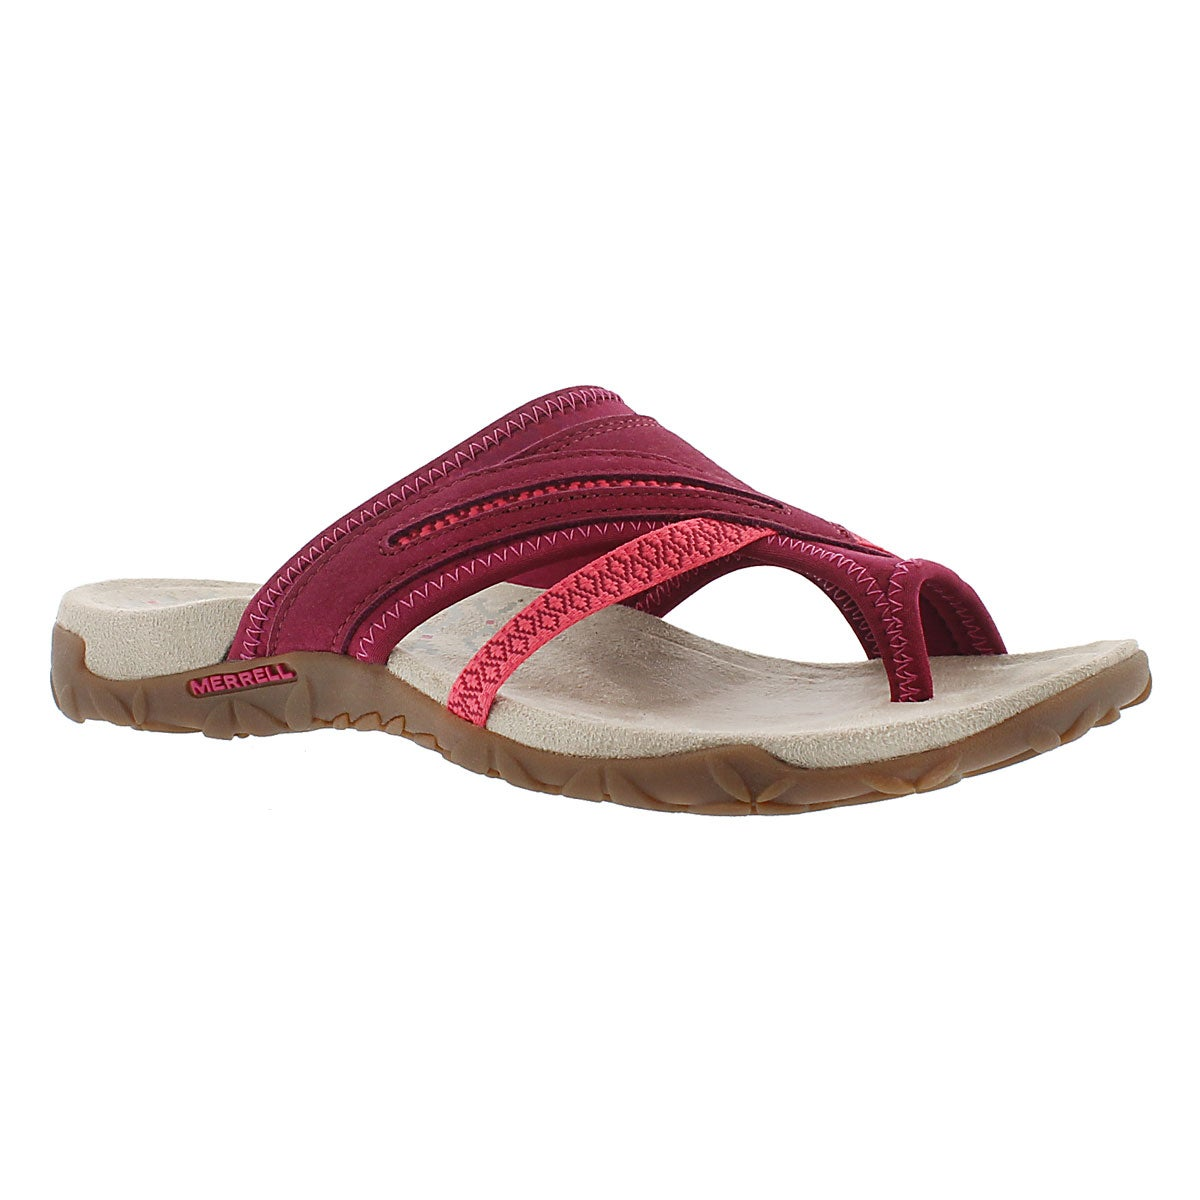 Lds Terran Post II pink toe wrap sandal